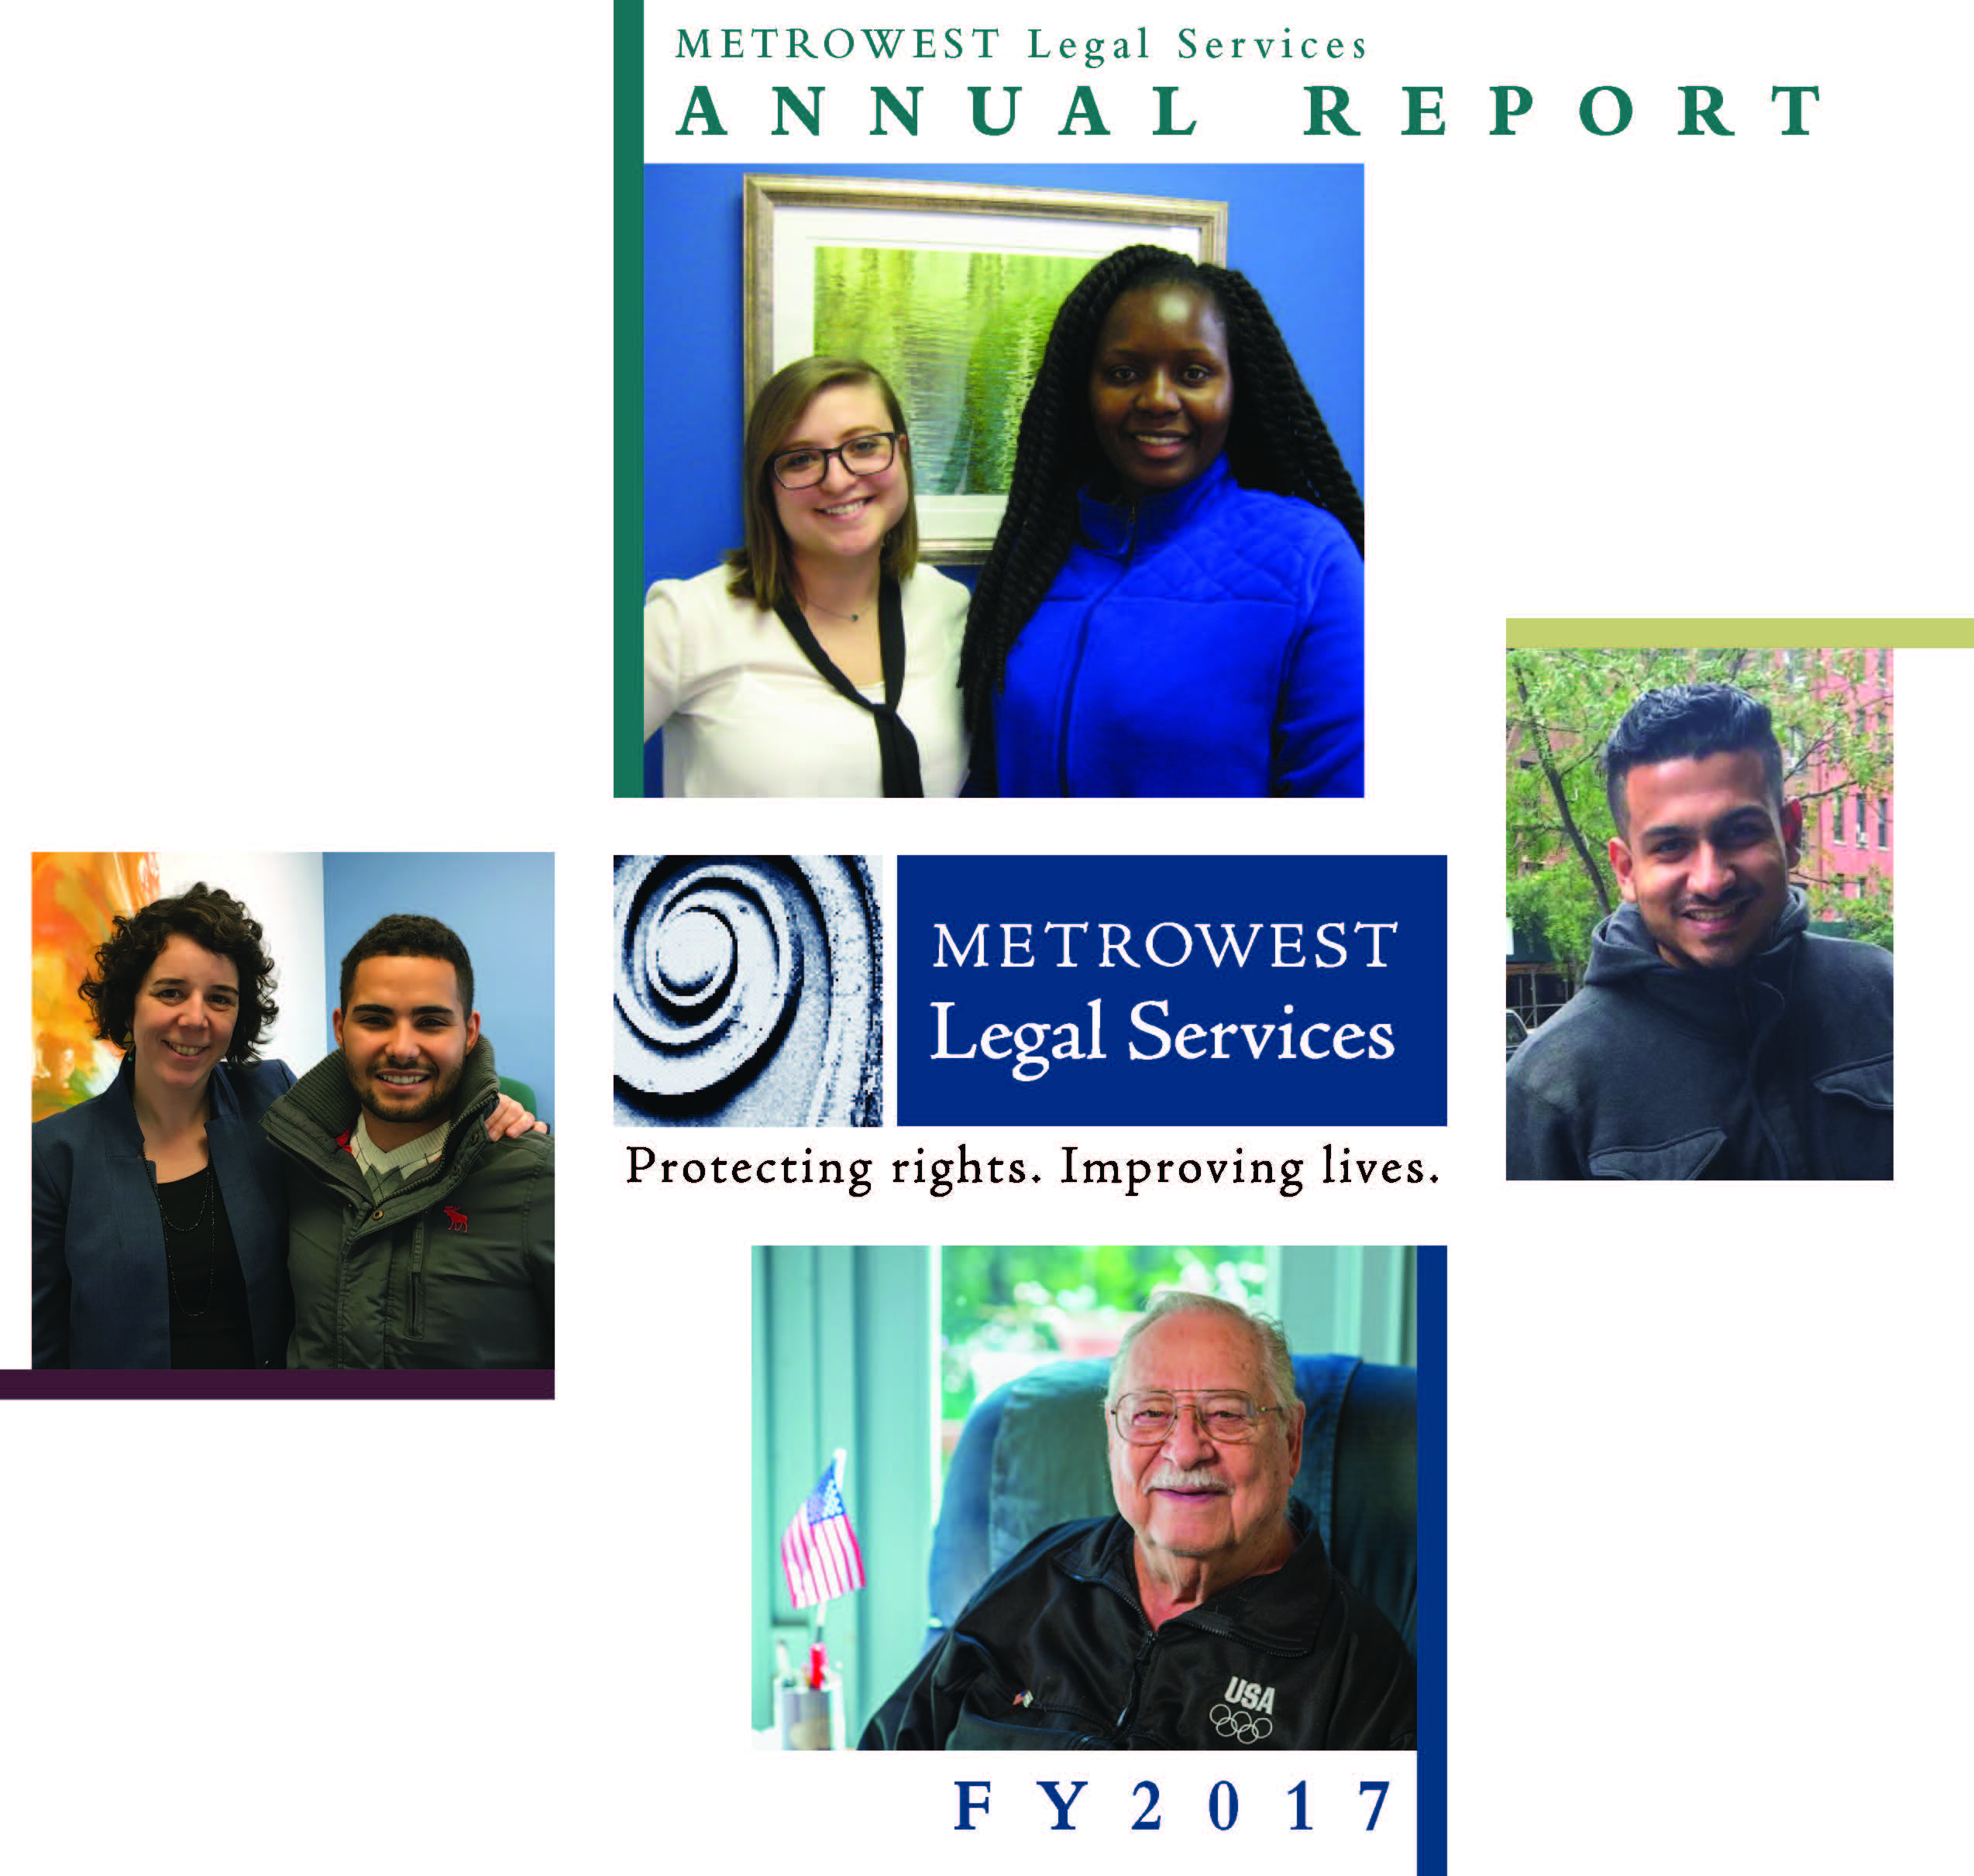 MWLS 2017 Annual Report